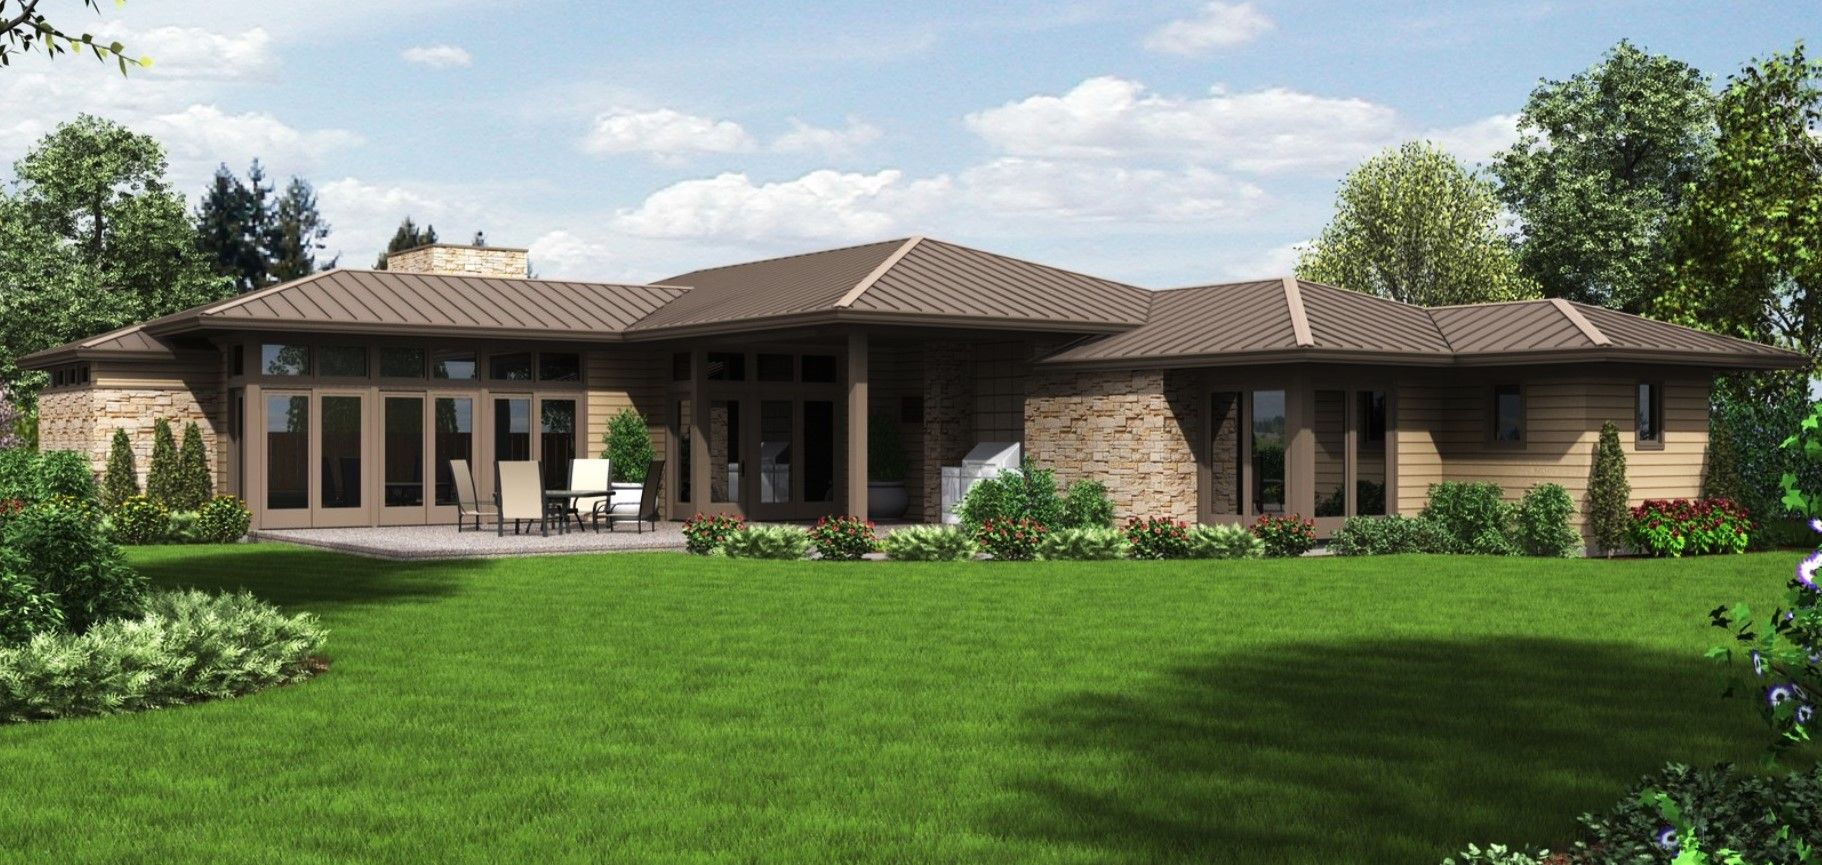 Contemporary Prairie Style Ranch By Alan Mascord The Houston Plan 1246 Ranch House Plans Ranch House Designs Ranch House